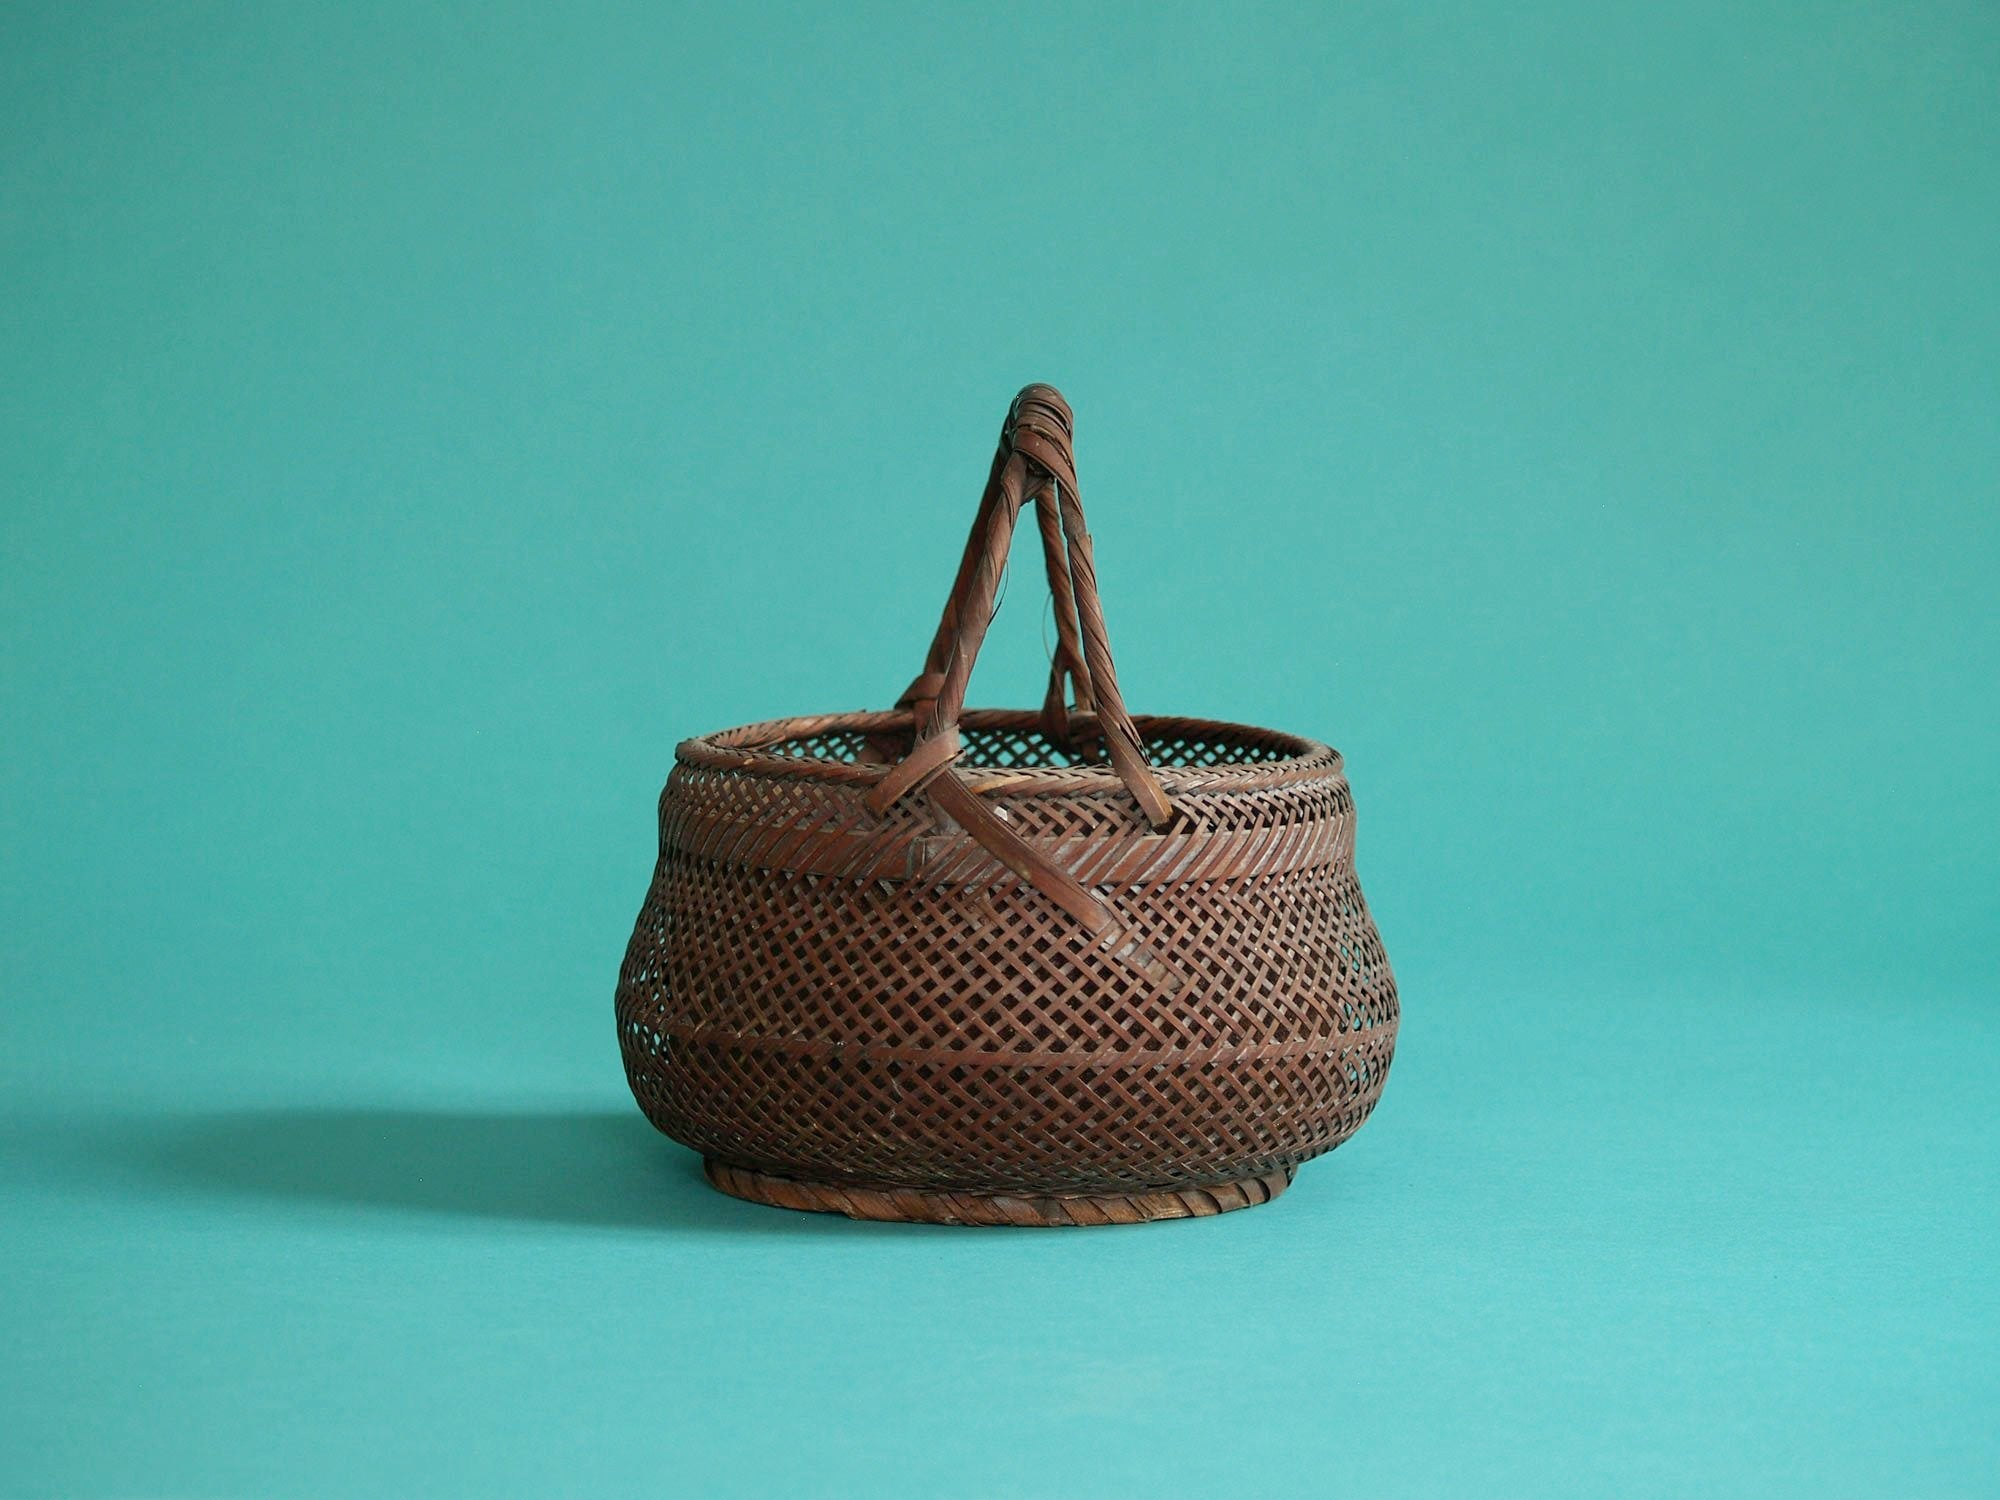 Sumitorikago, coupe / Panier en bambou pour la cérémonie du thé, Japon (Fin de l'ère Meiji / début ère Shōwa)..Sumitorikago bamboo charcoal basket for chanoyu, Japan (Late Meiji era / early Shōwa era)